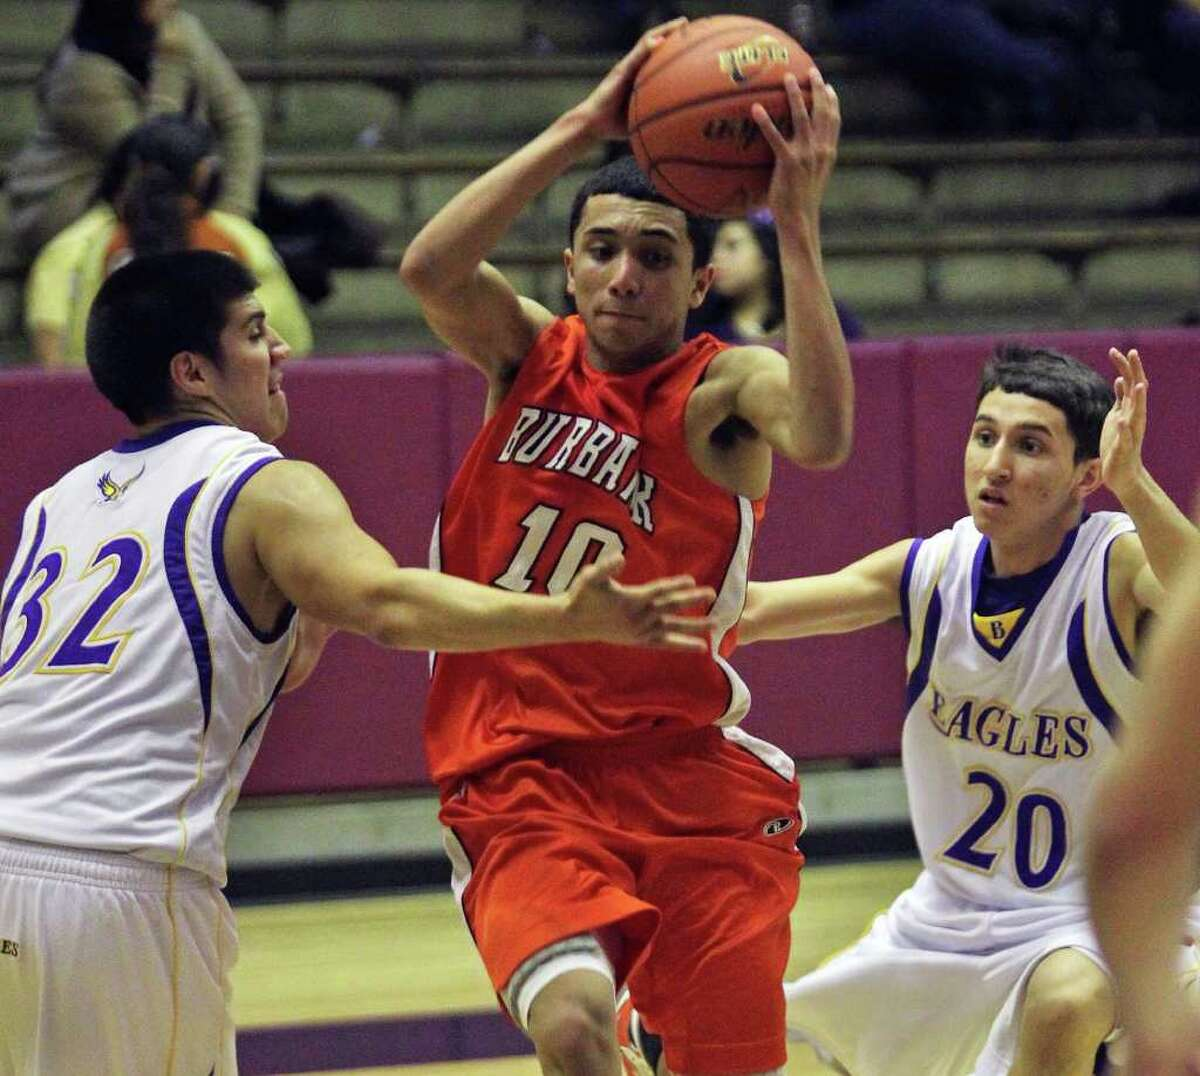 SPORTS Bulldog Jason Ainsworth moves into the lane between Jacob Gutierrez (32) and Jehu Ibanez as Burbank plays Brackenridge at Alamo Convocation Center on January 14, 2011. Tom Reel/Staff